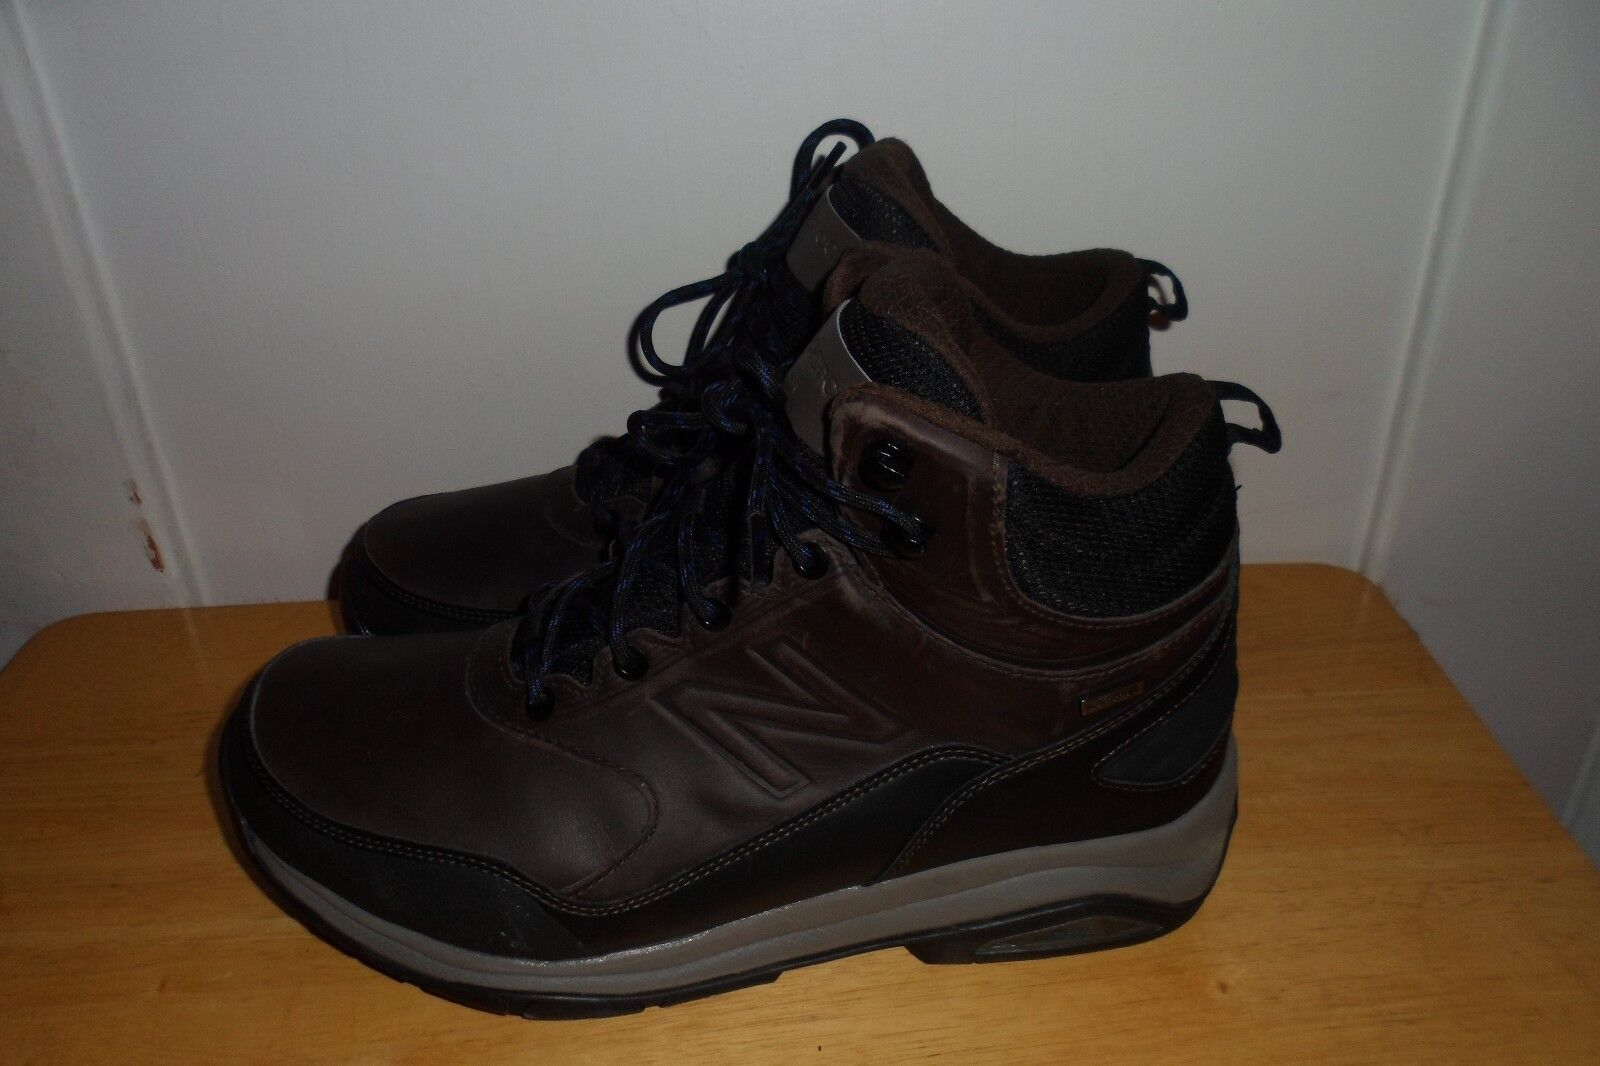 2018 New Balance 2018 V1 MW1400DB WATERPROOF Bottes 10 4E  4E EUC